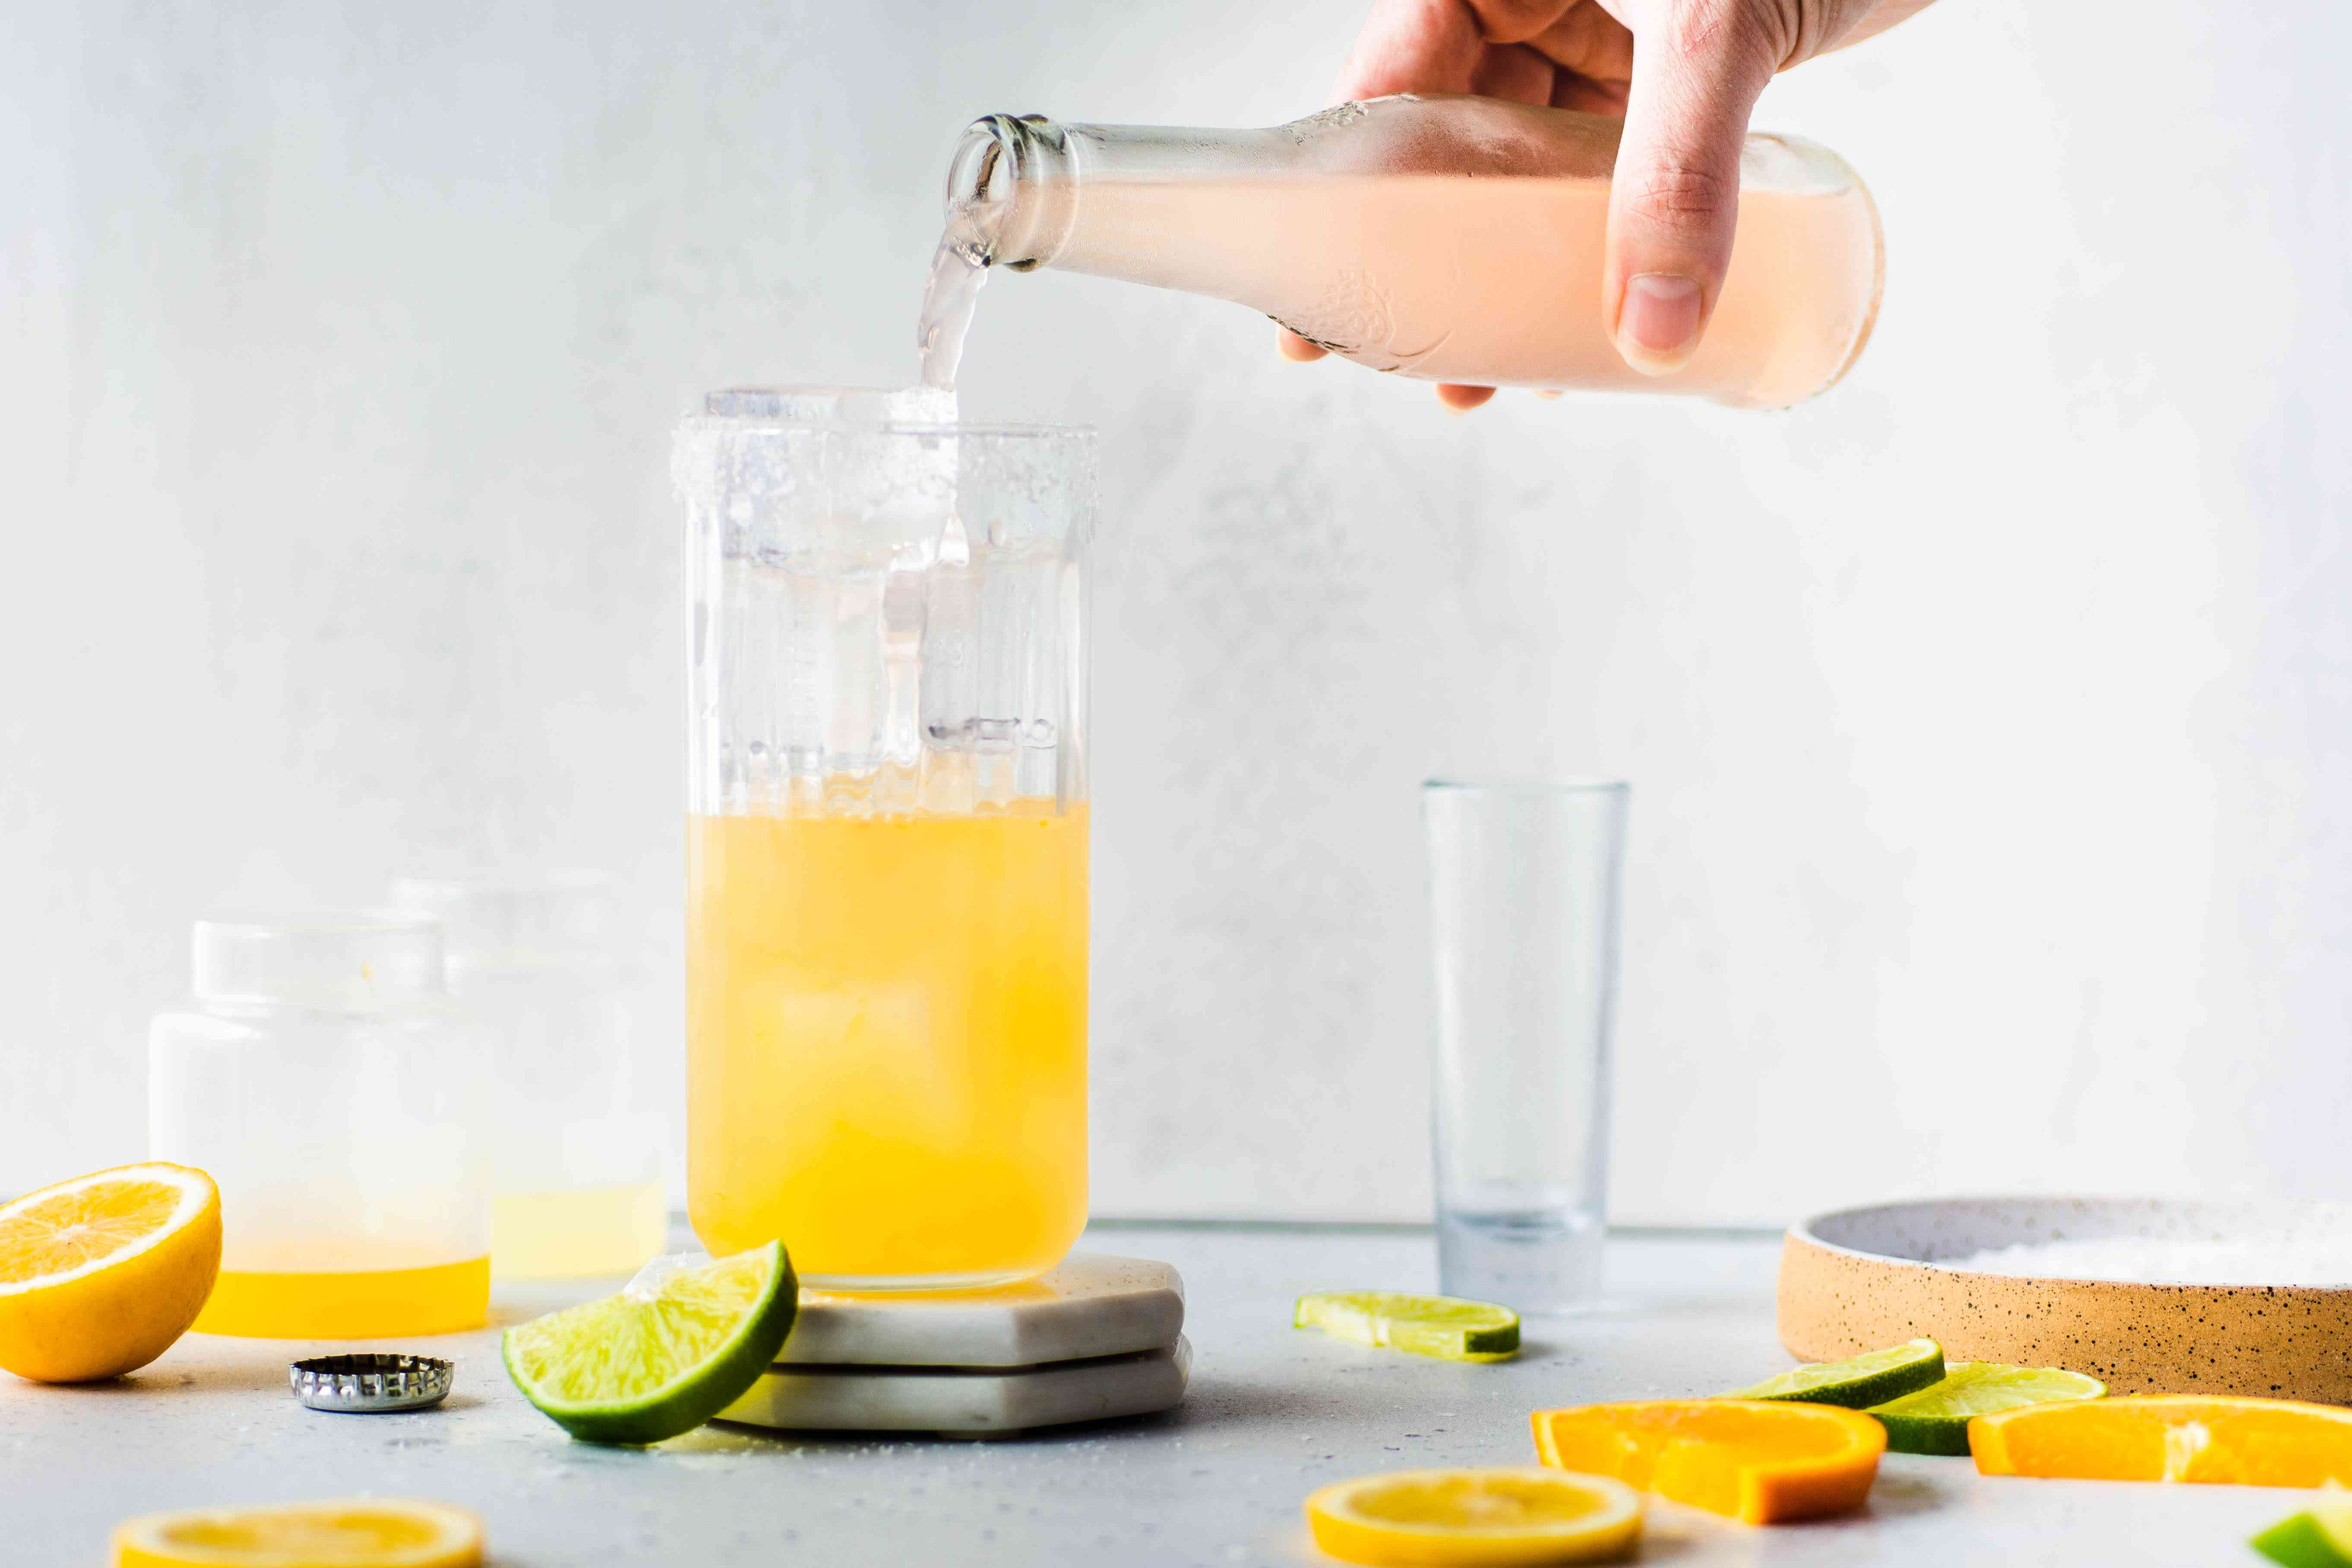 Add grapefruit soda to the tequila and juice mixture